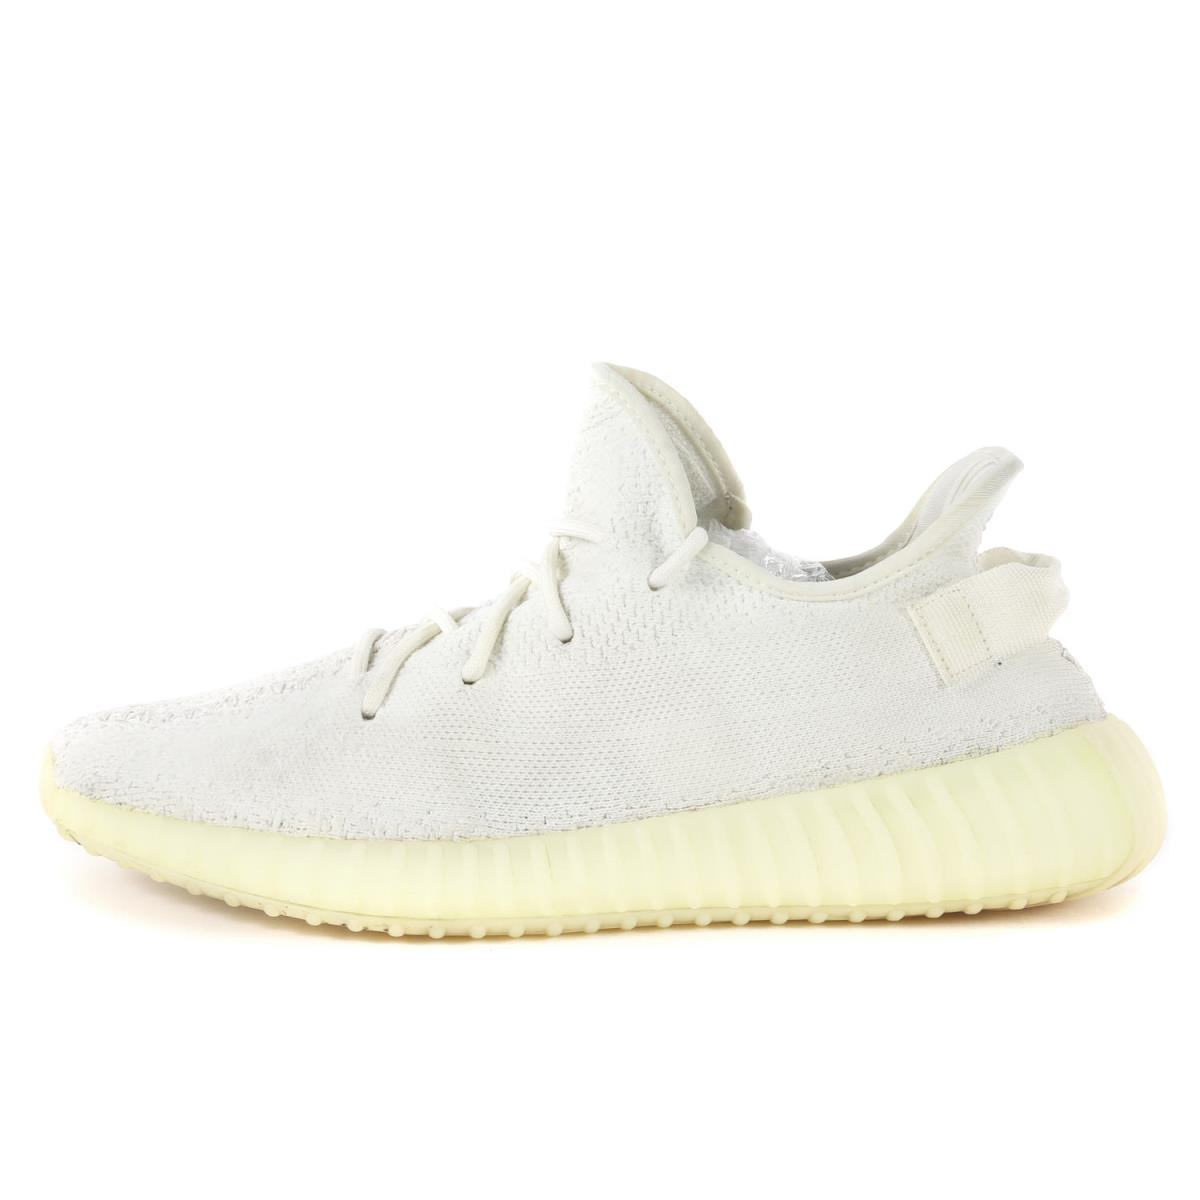 メンズ靴, スニーカー adidas YEEZY BOOST 350 V2 CREAM WHITE CP9366 US11 29cm K2959